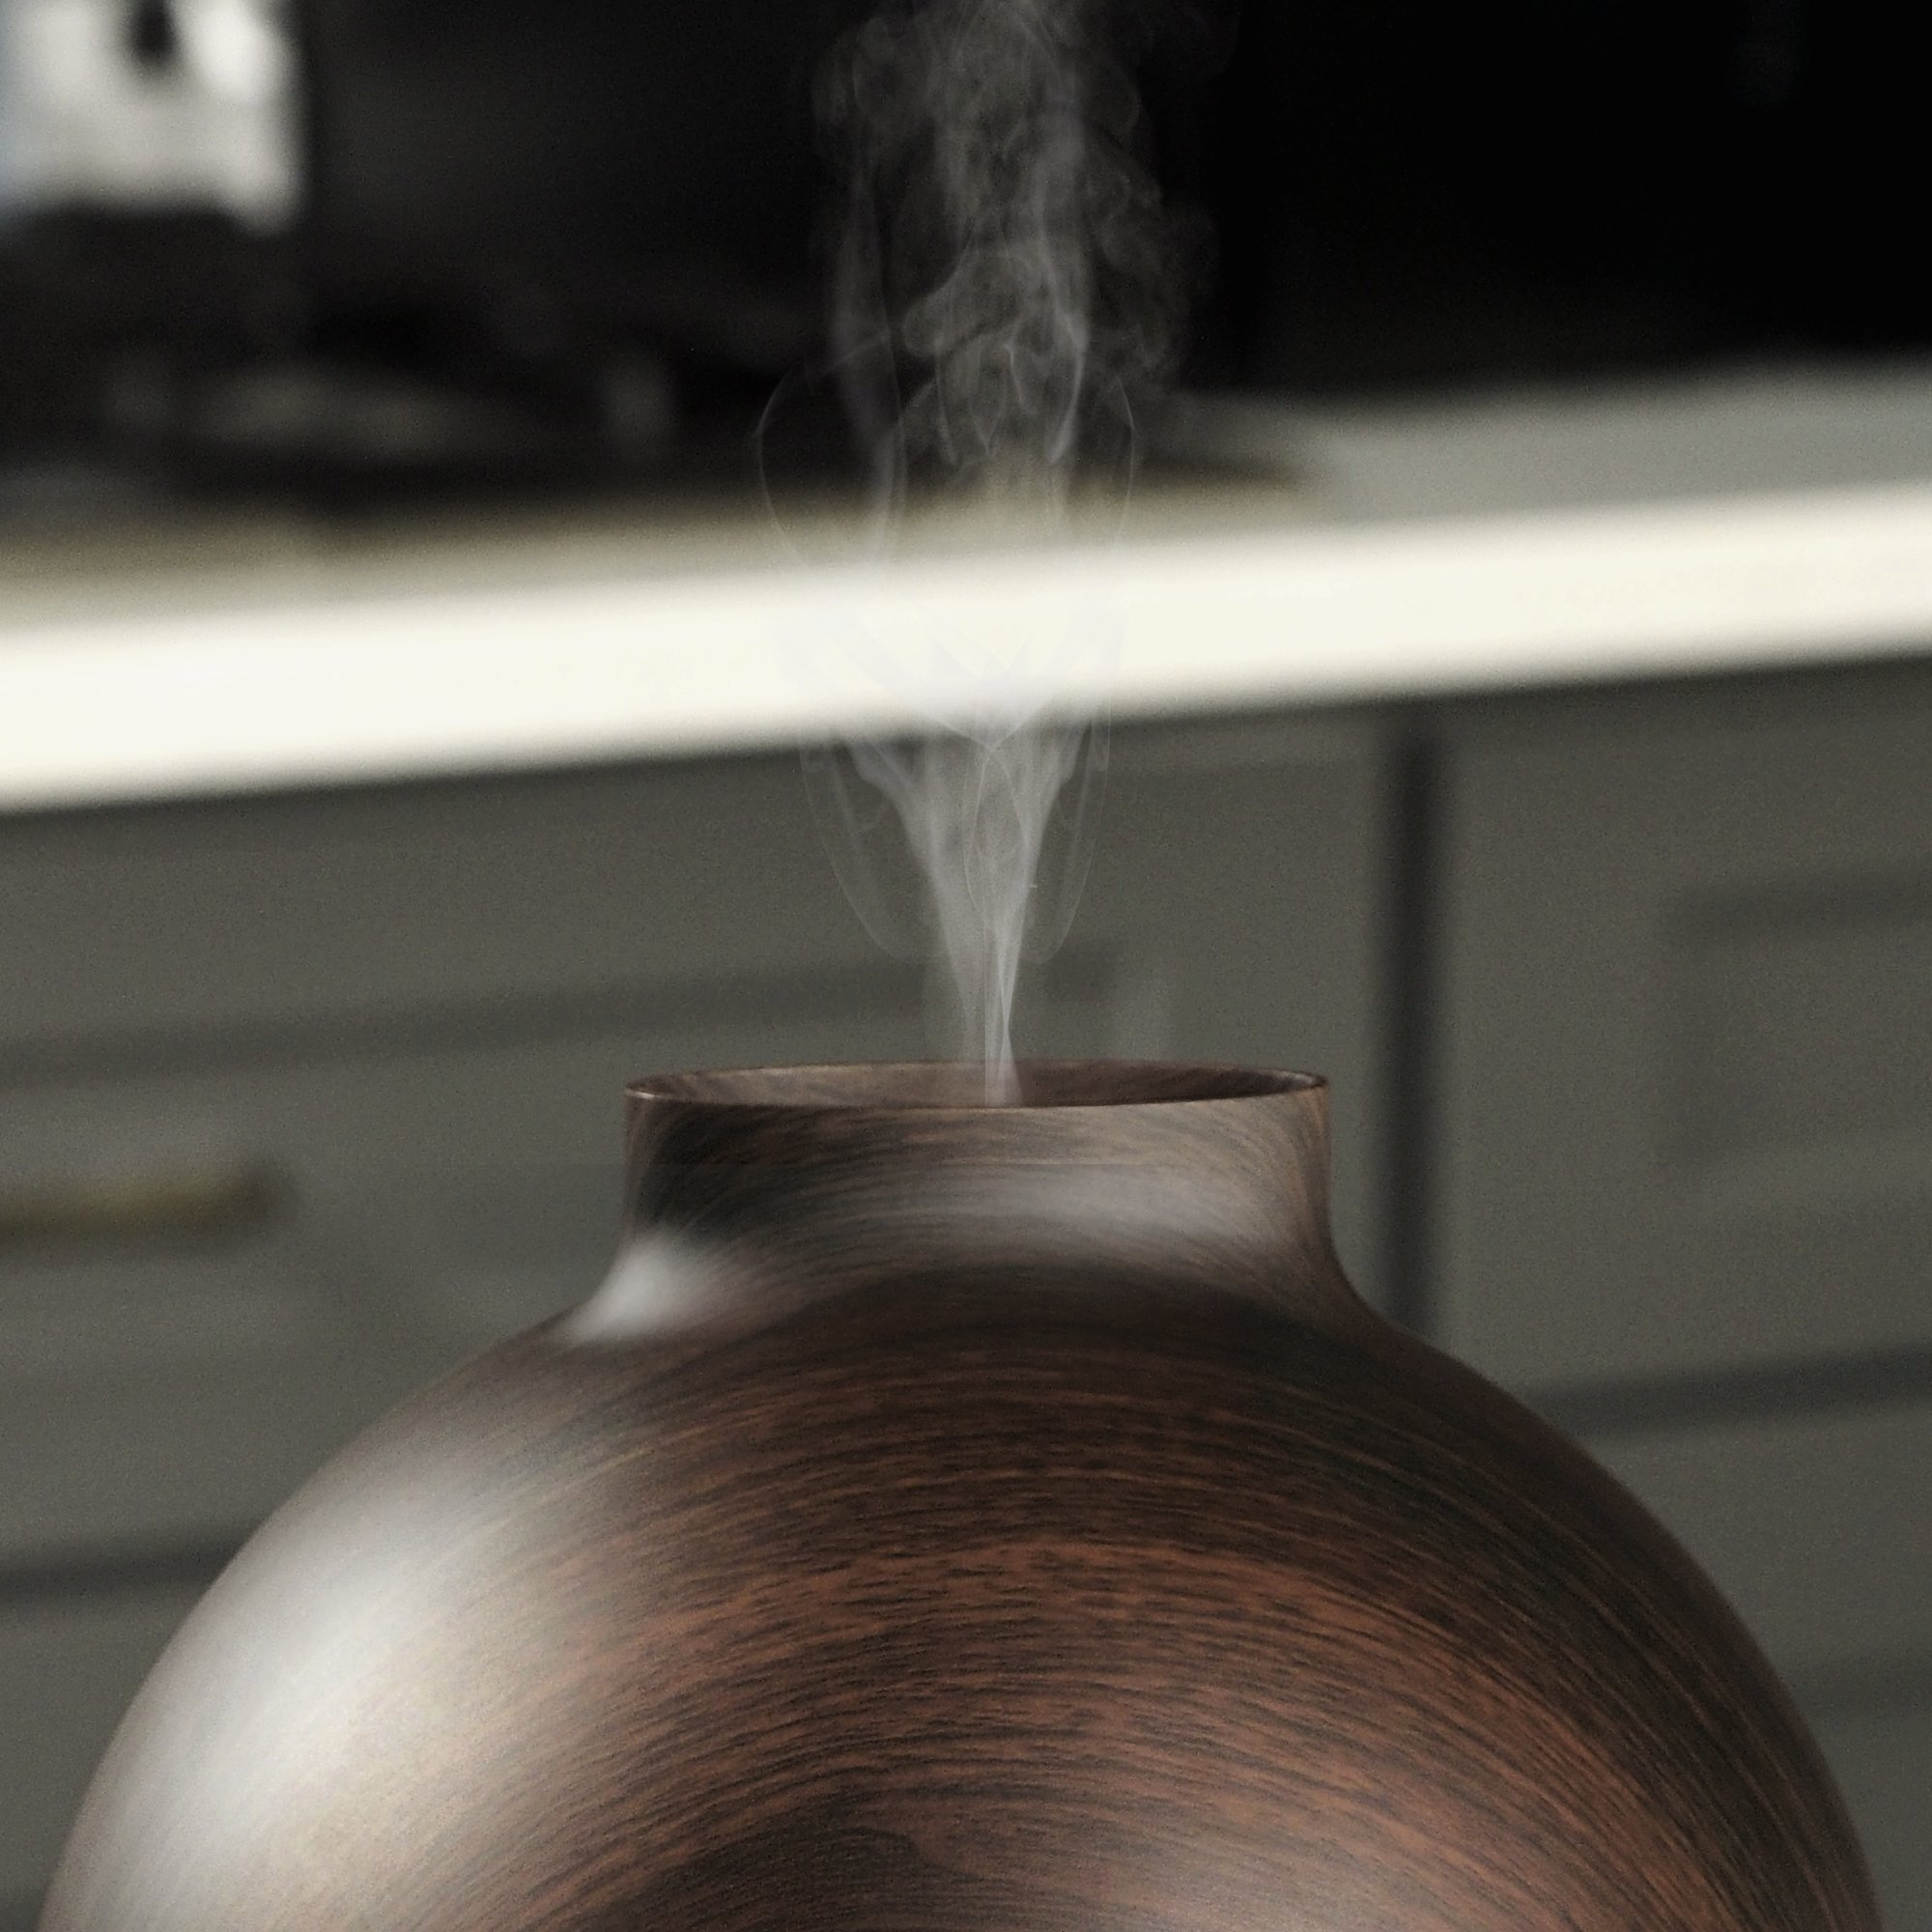 Extra Large Essential Oil Diffuser Holds a Big 20 FL OZ / 600 ml. Lasts All Night, Very Quiet. Mist Humidifier Aromatherapy Machine for Office Home Bedroom Study Yoga Spa (Dark Brown). … by Vida Essentials (Image #6)